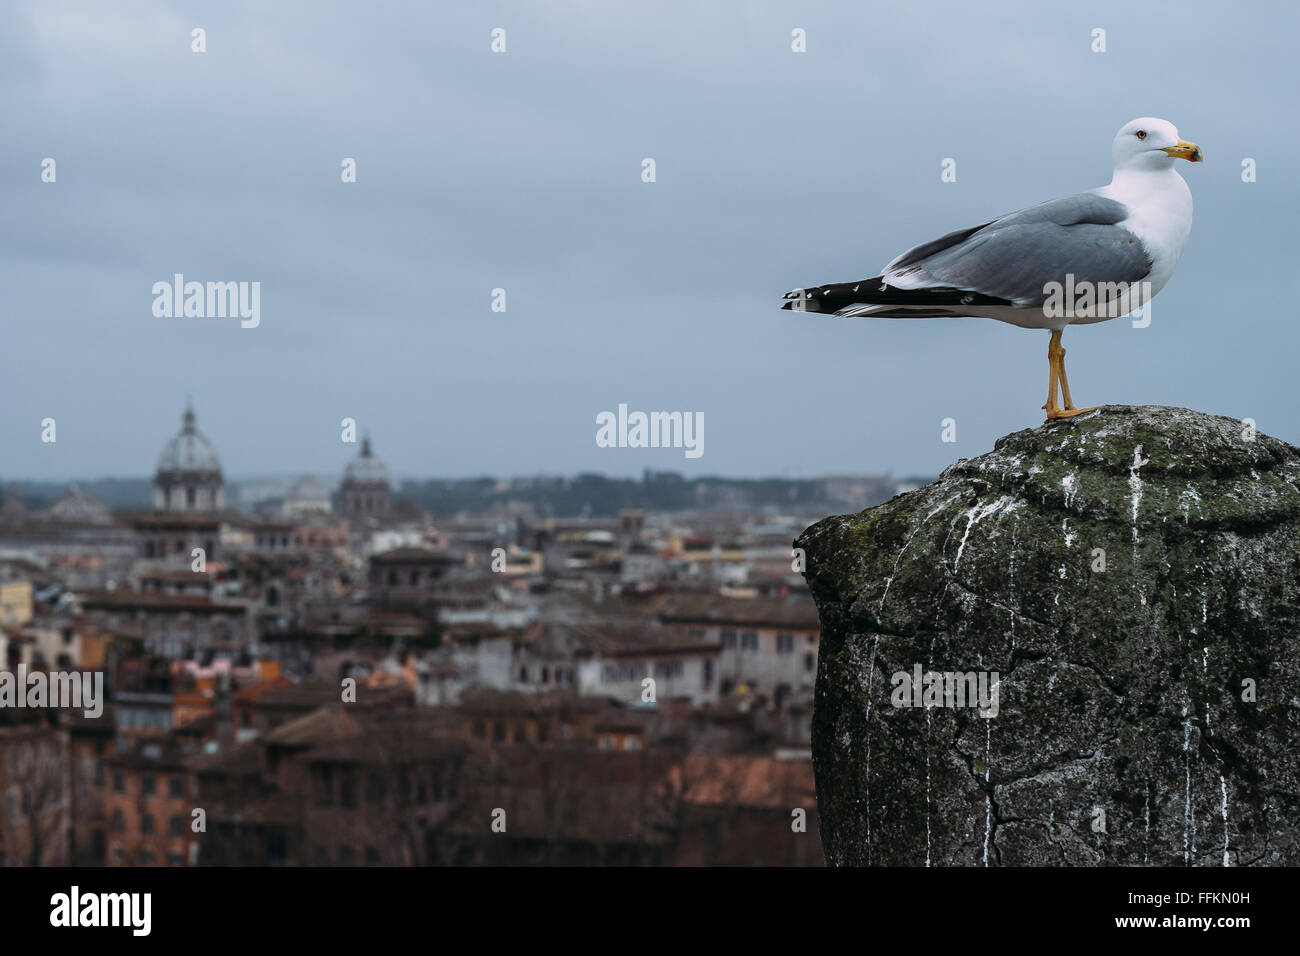 Blur Above View Stock Photos & Blur Above View Stock Images - Alamy